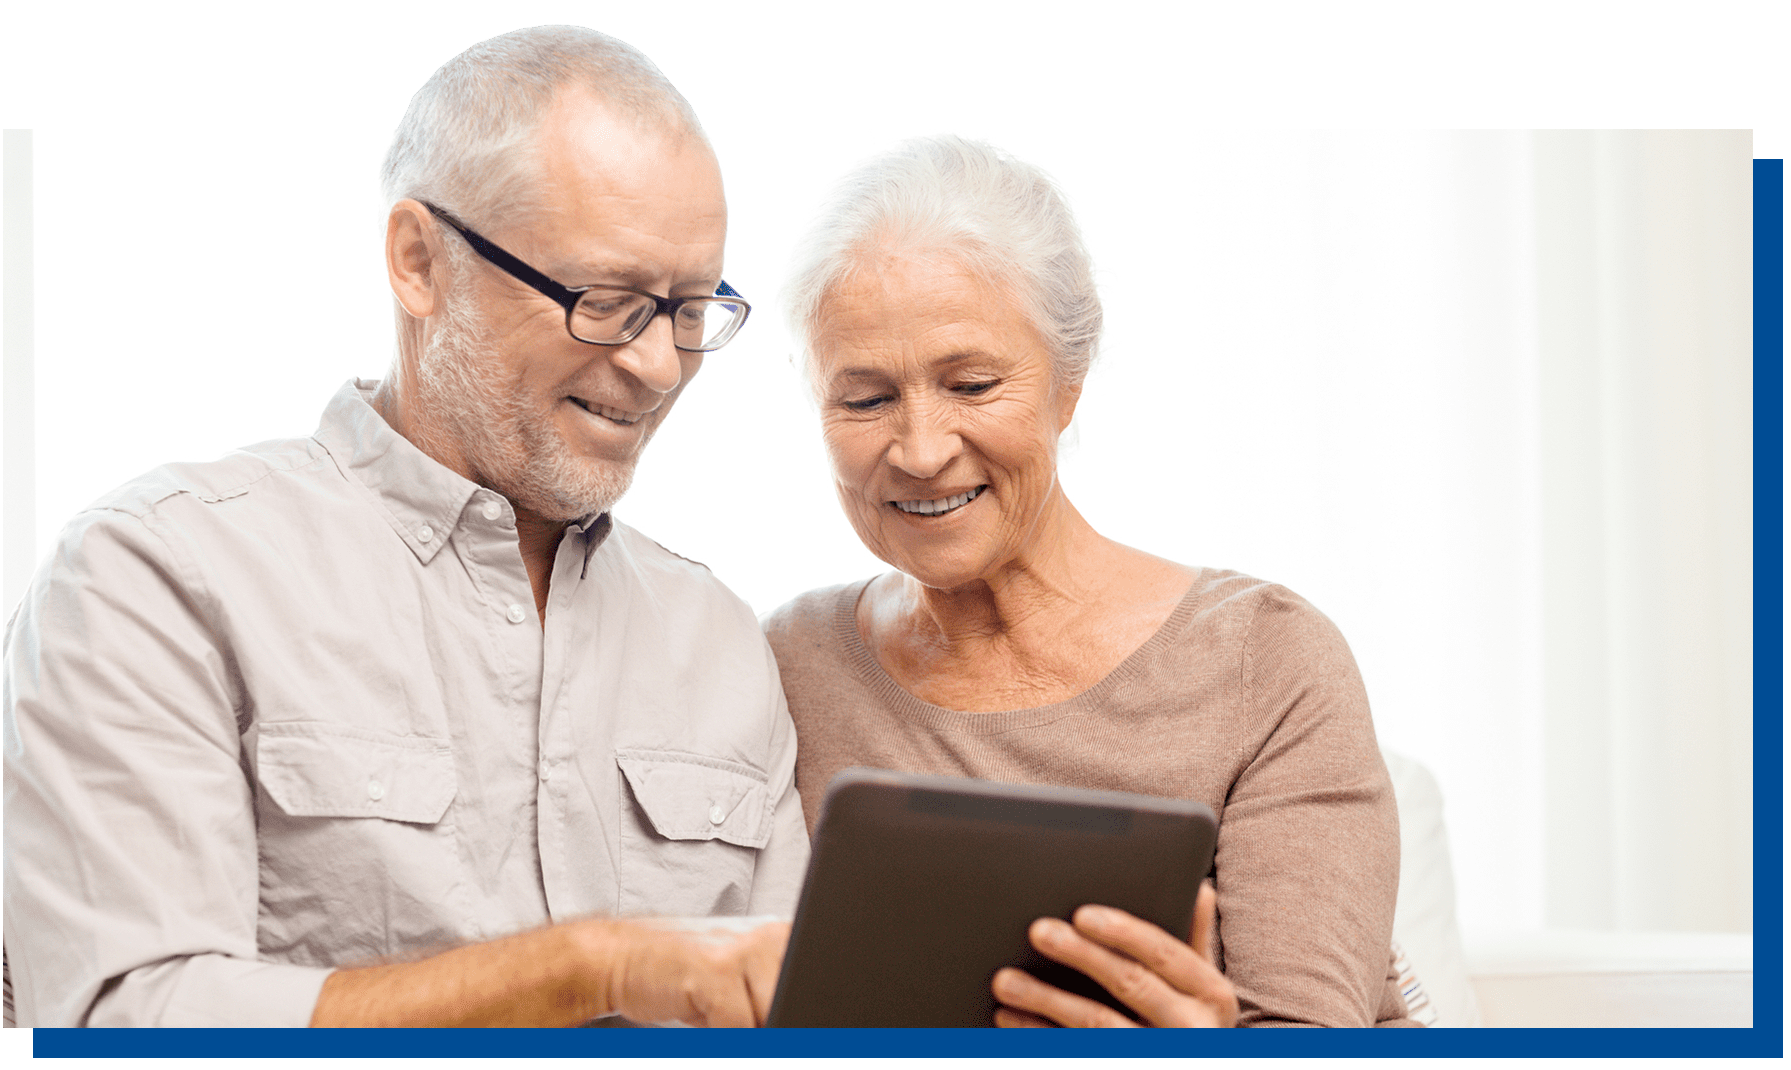 Couple using a Tablet